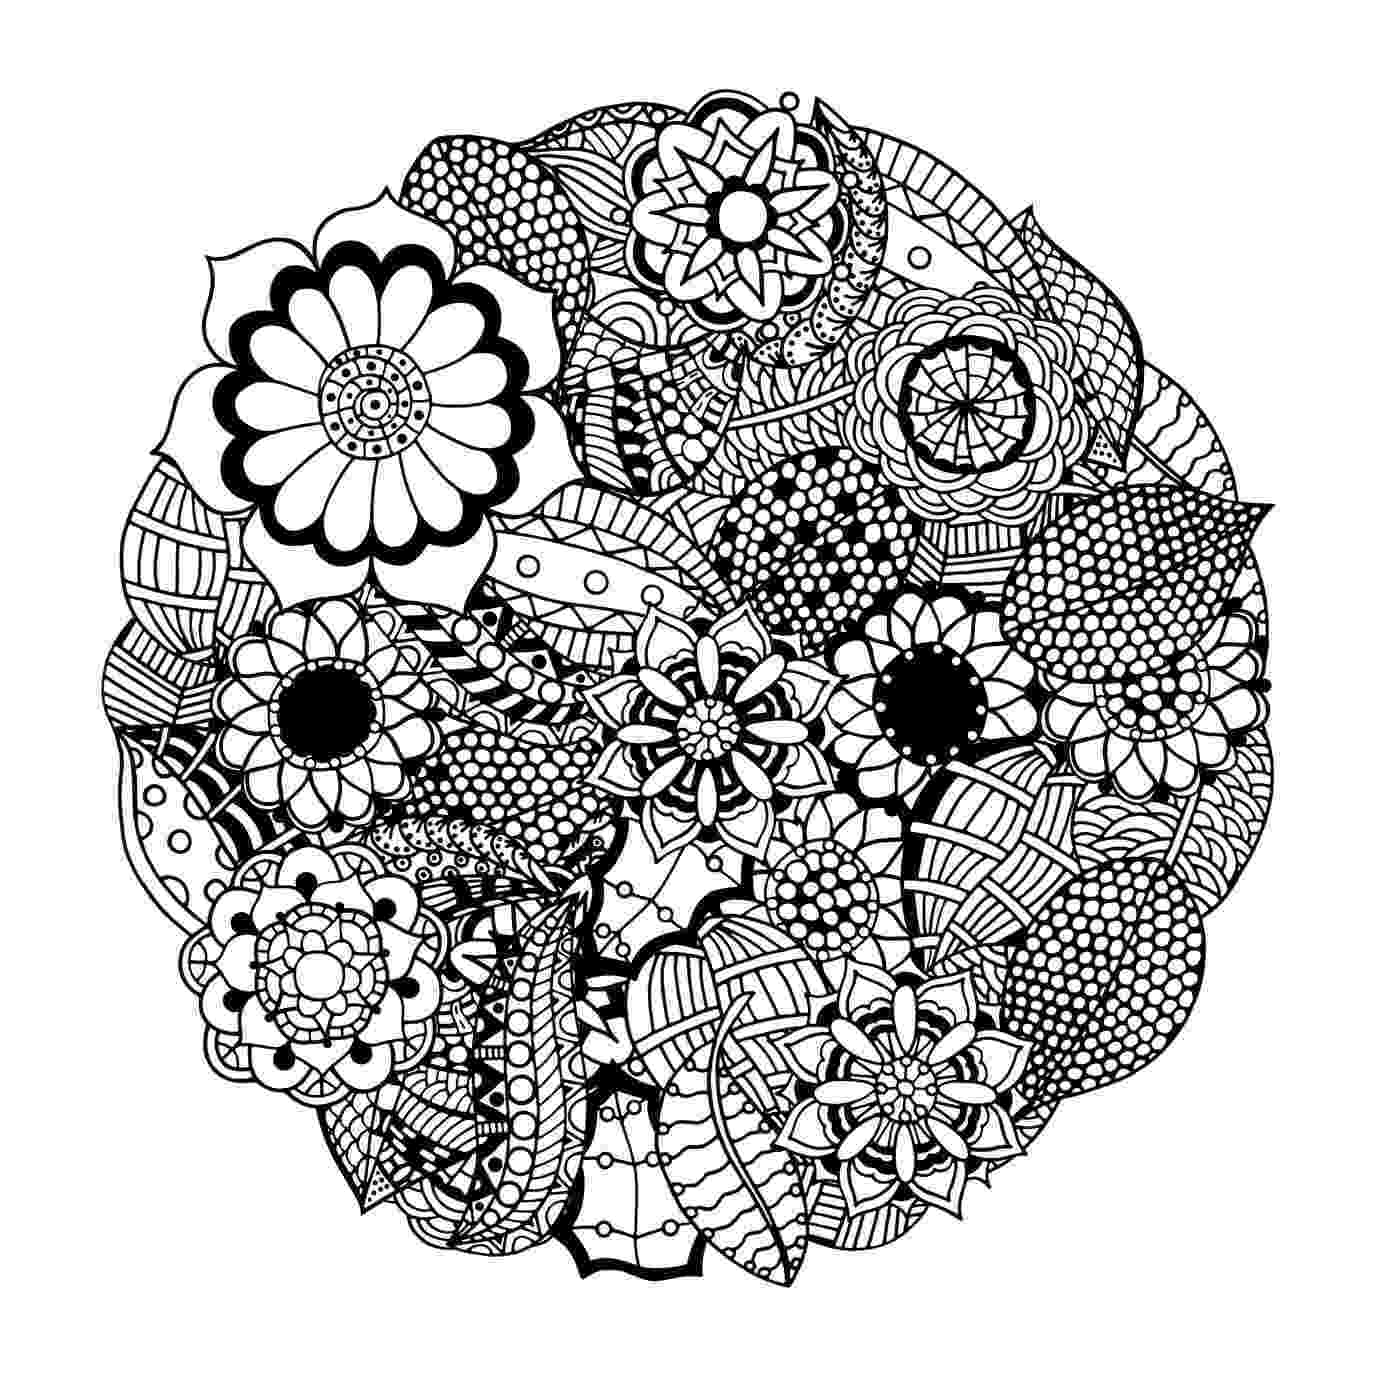 free online mandala coloring pages for adults how to make your own mandala coloring pages for free online pages free adults mandala coloring for